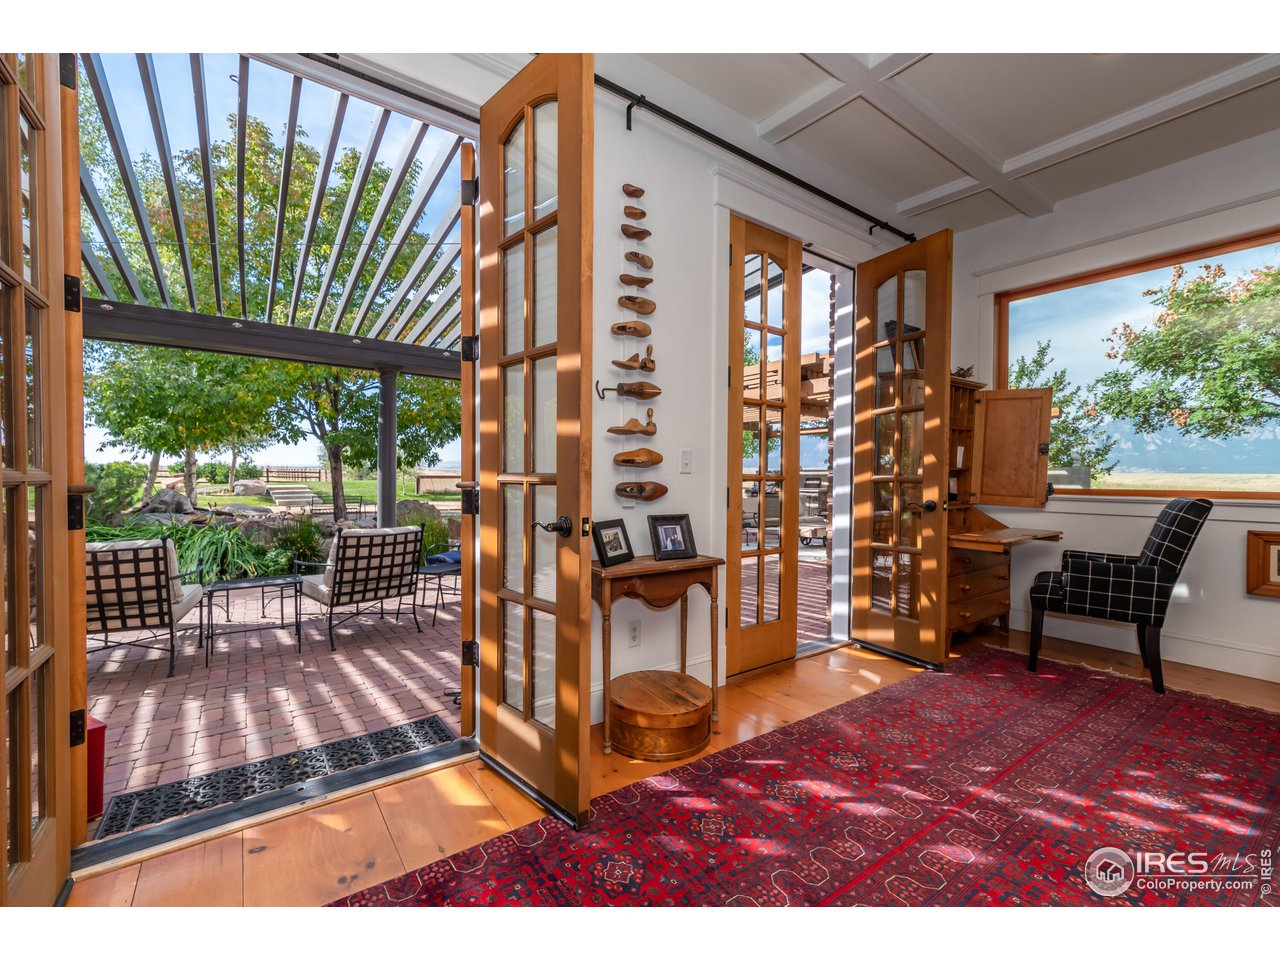 French Doors that open to outdoor living area